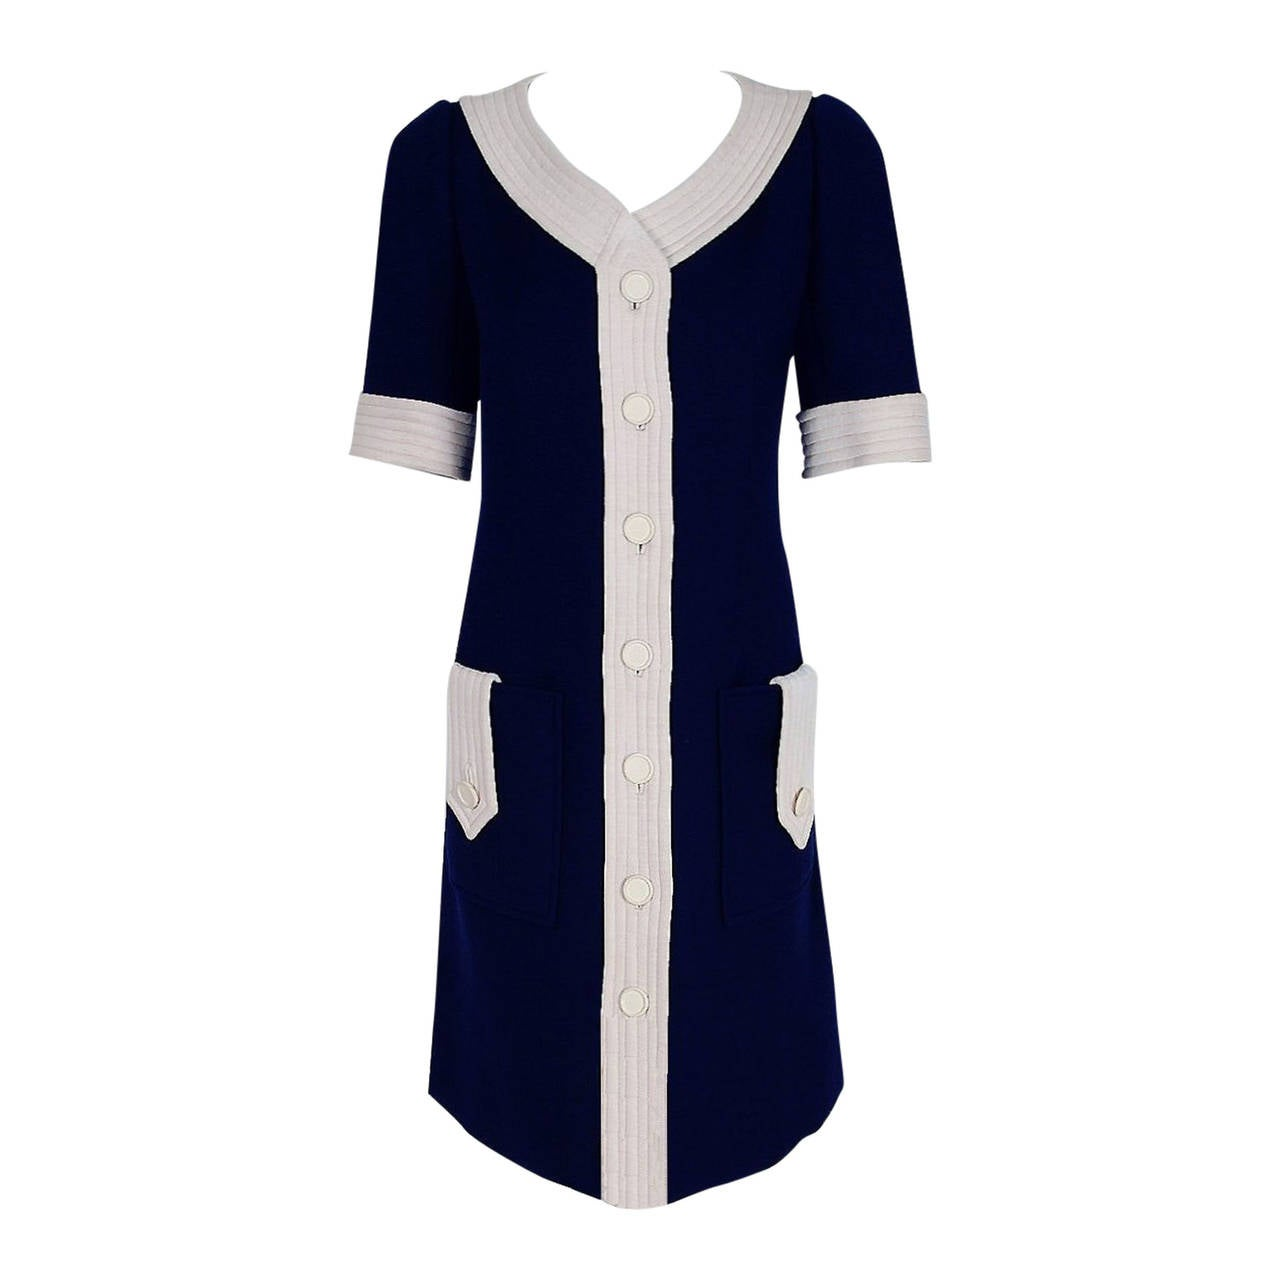 1967 Courreges Couture Navy-Blue & White Wool Block-Color Mod Space-Age Dress 1